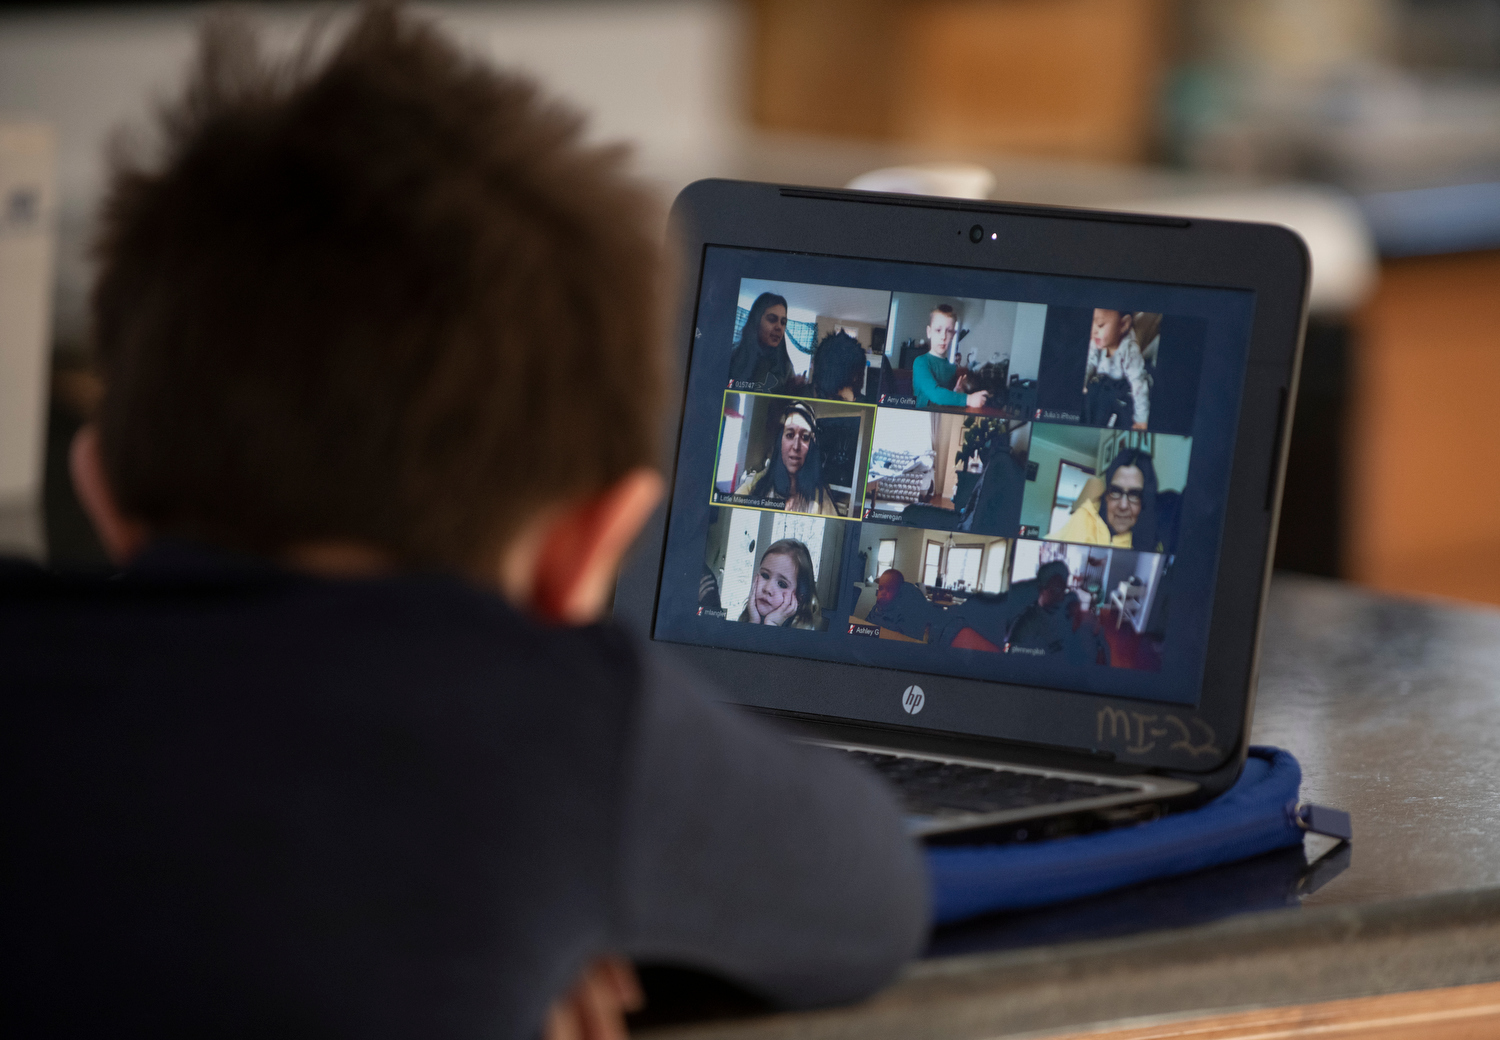 """EAST FALMOUTH - Connor Velardo, 5, attends """"circle time"""" via Zoom with his preschool class at Little Milestones. He enjoys seeing his classmates and teachers for their daily """"good morning"""" ritual."""